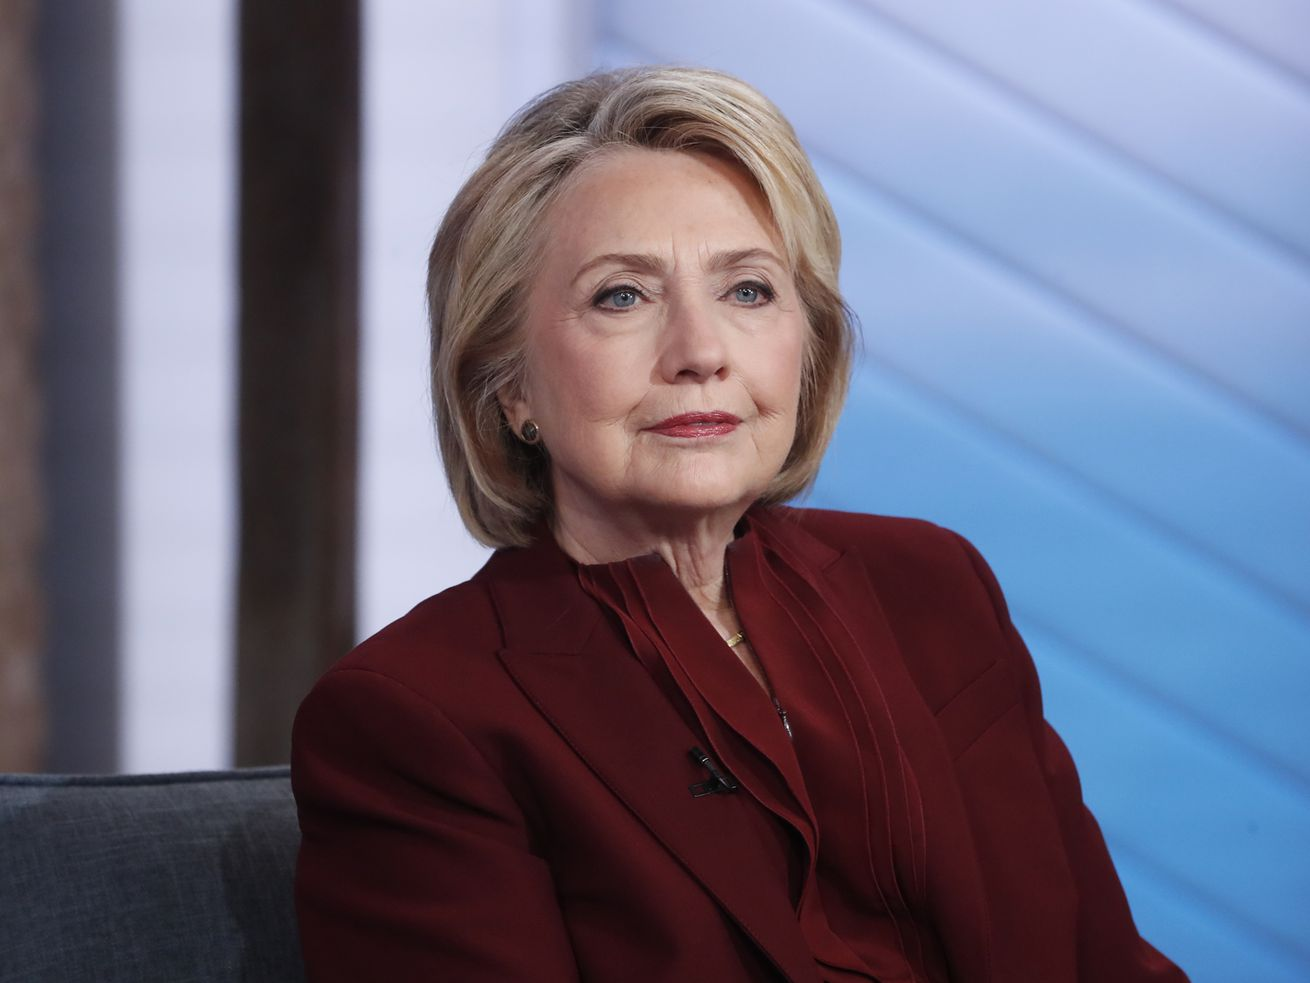 In a dark red suit, Clinton smiles slightly, sitting in a blue studio.